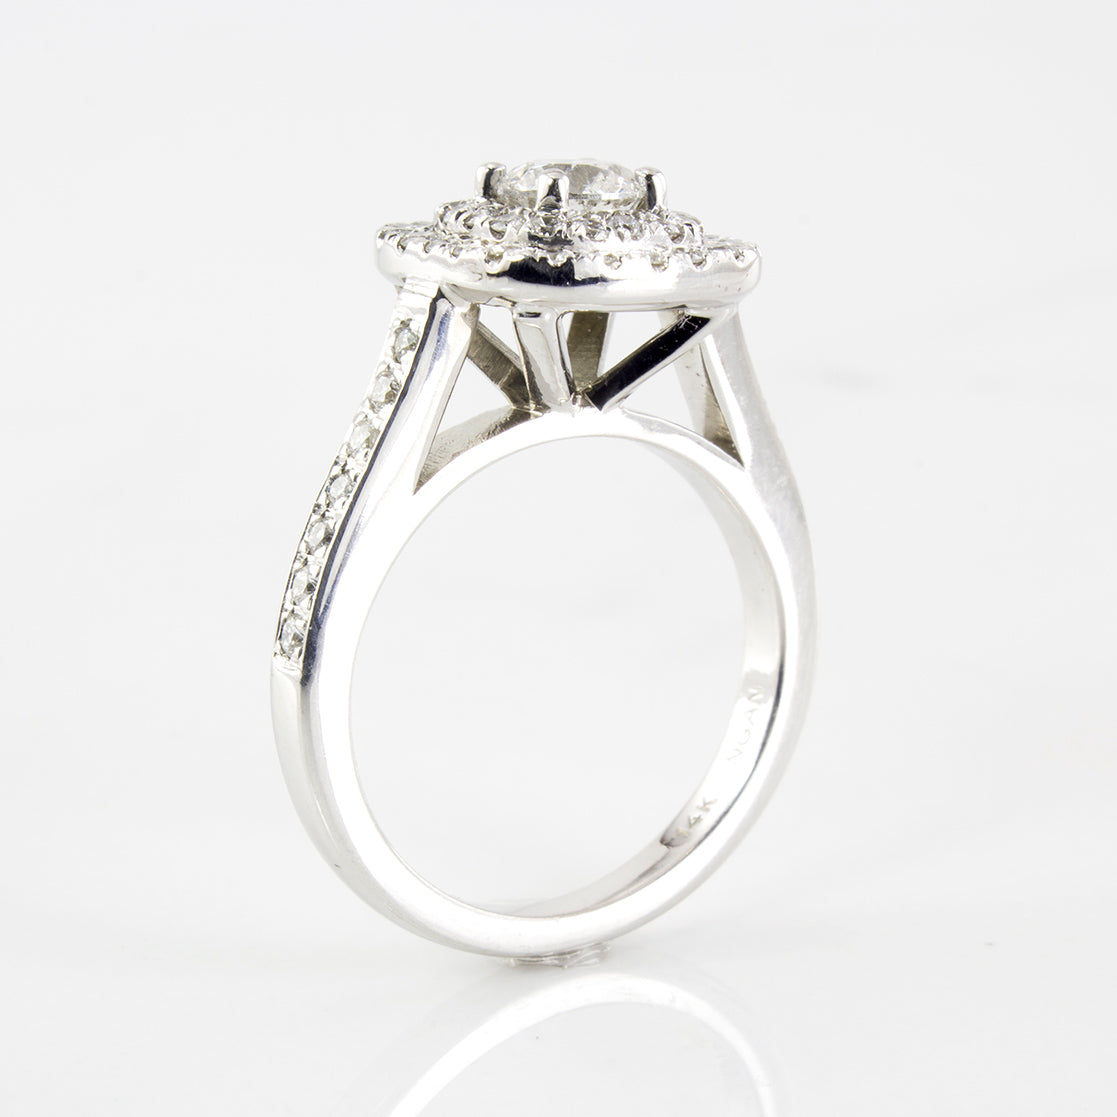 Double Halo Diamond Engagement Ring | 1.25 ctw | SZ 5.25 |